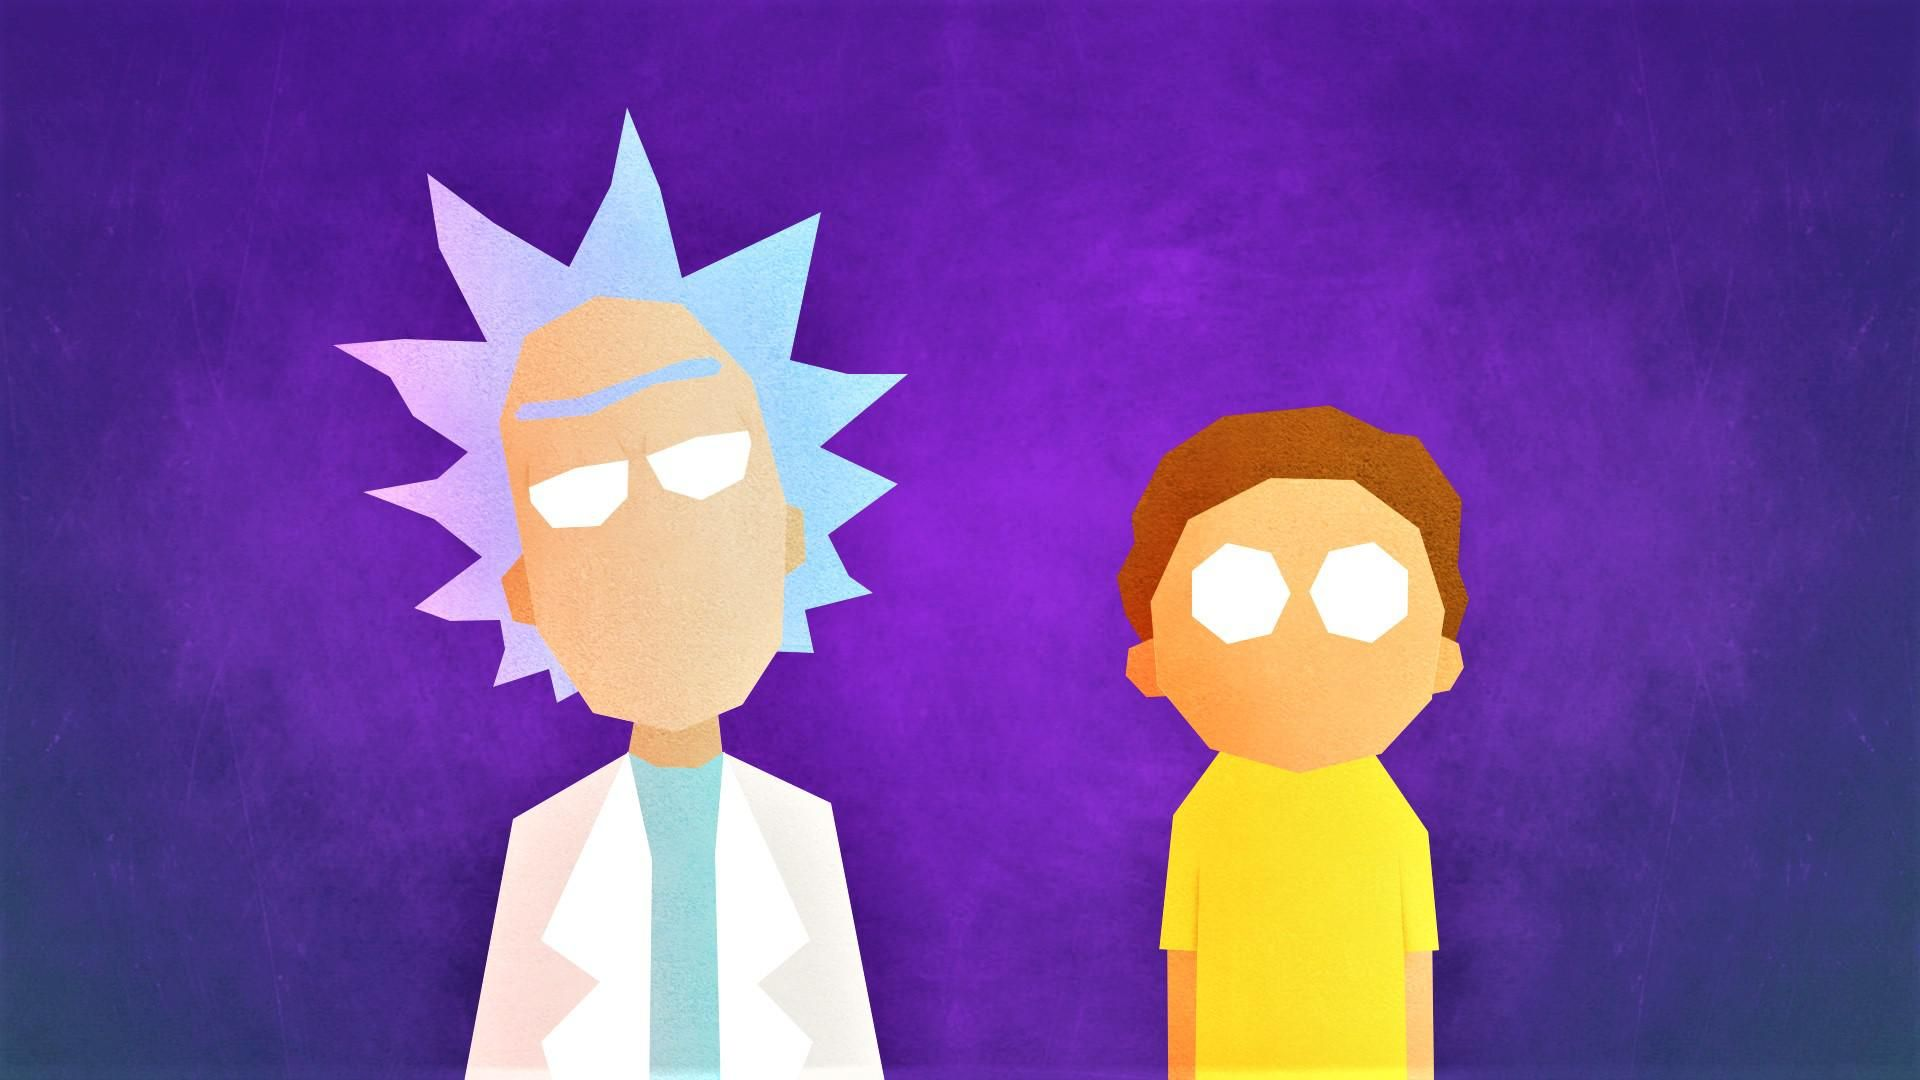 Rick And Morty Minimalist 1920x1080 In 2020 Rick And Morty Poster Morty Smith Rick And Morty